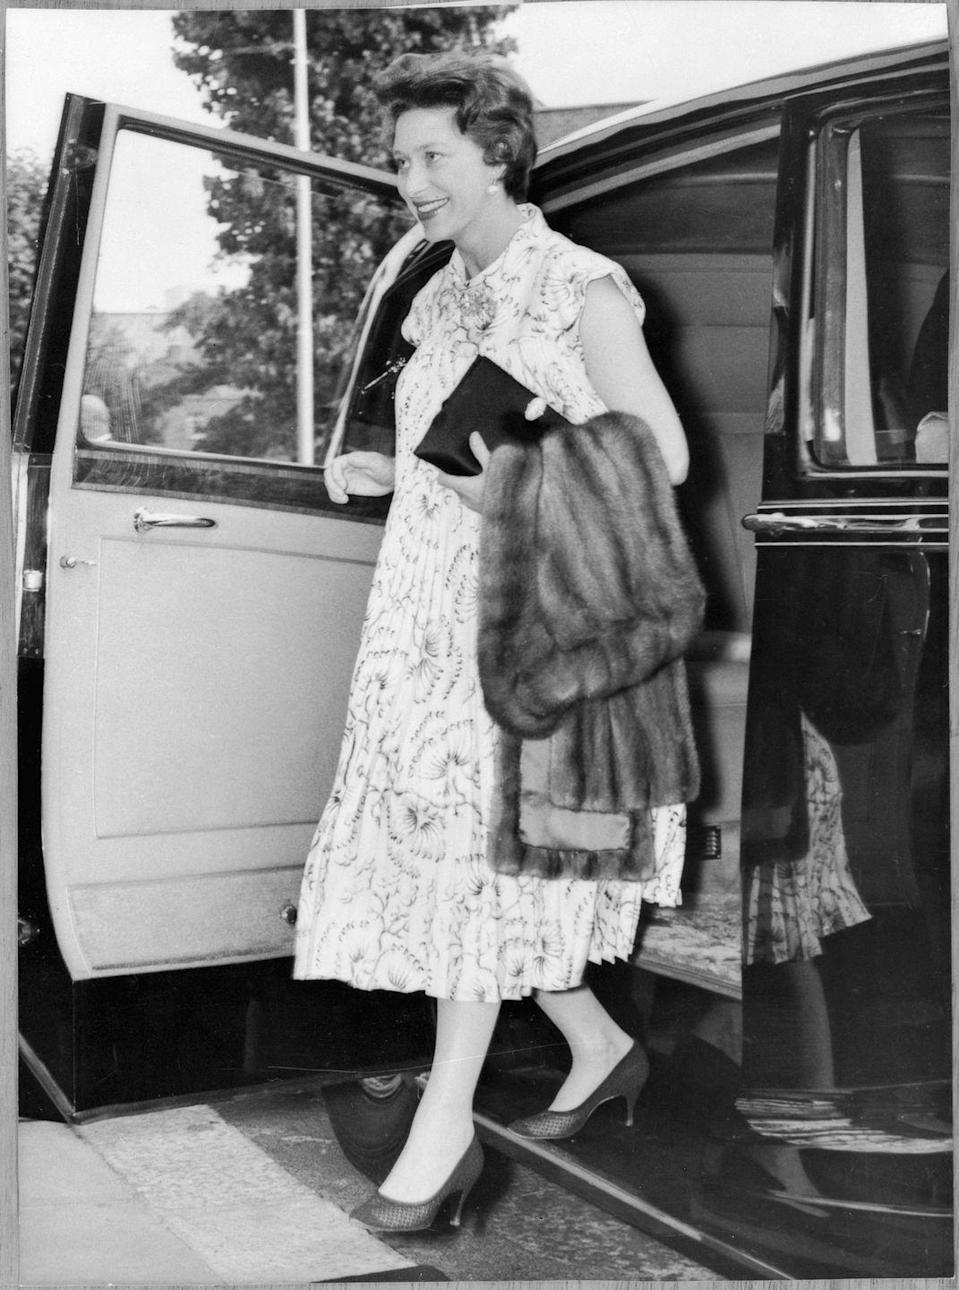 <p>While pregnant with her first child in 1961, Princess Margaret opted for a pleated A-line dress that comfortably accommodated her bump. </p>